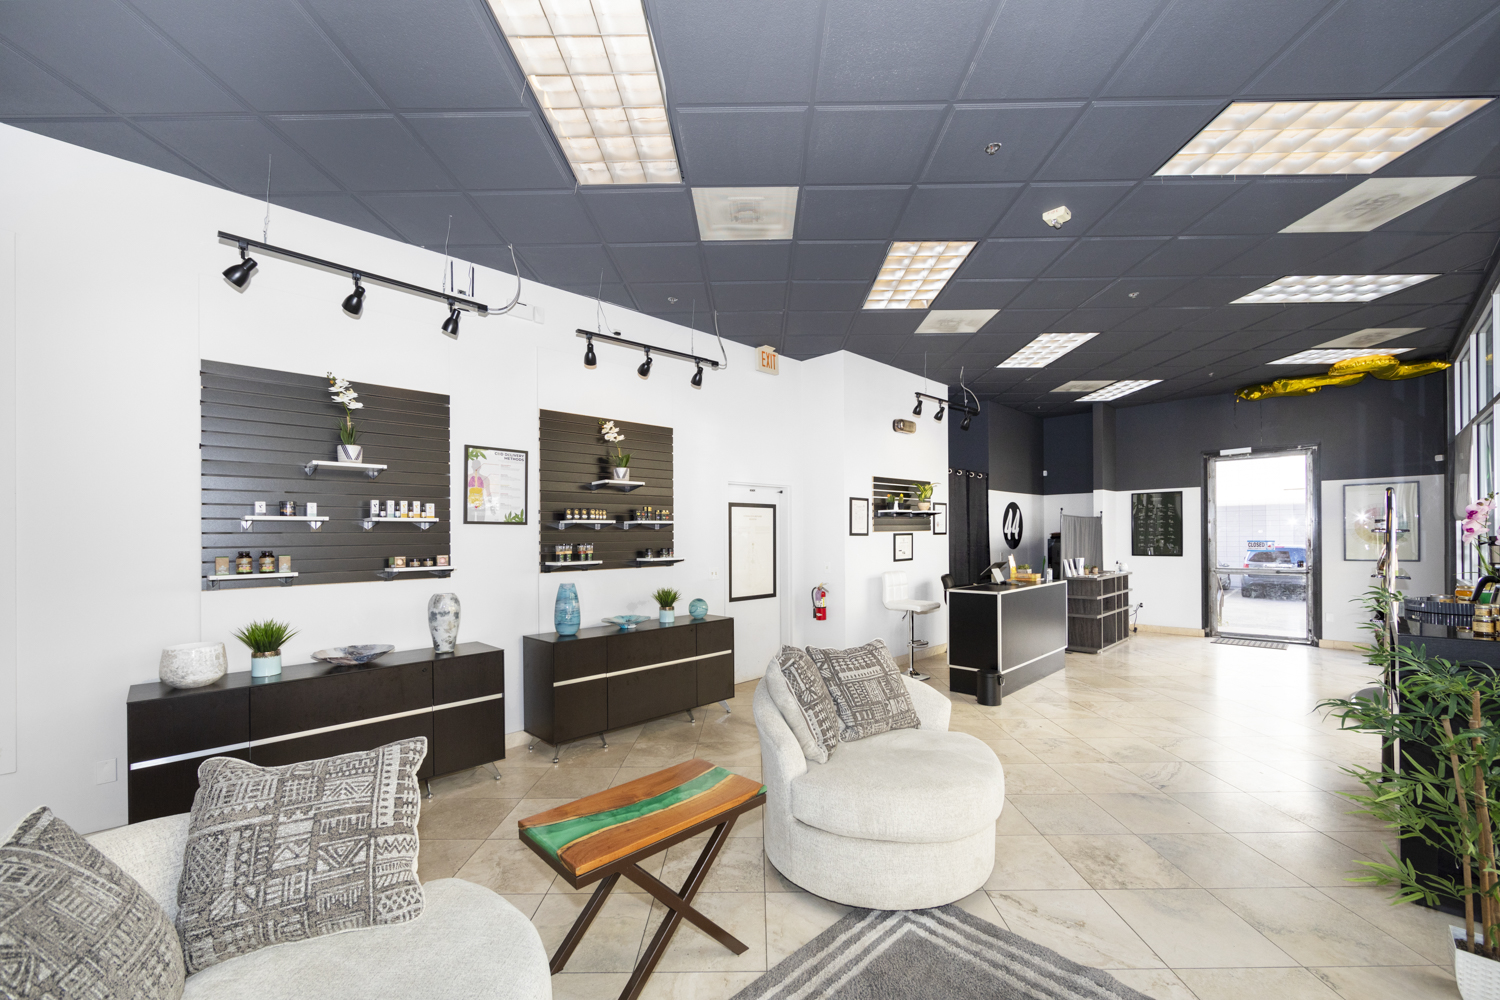 G1:12 44 Broadway Peach Properties Commercial real estate downtown Tucson